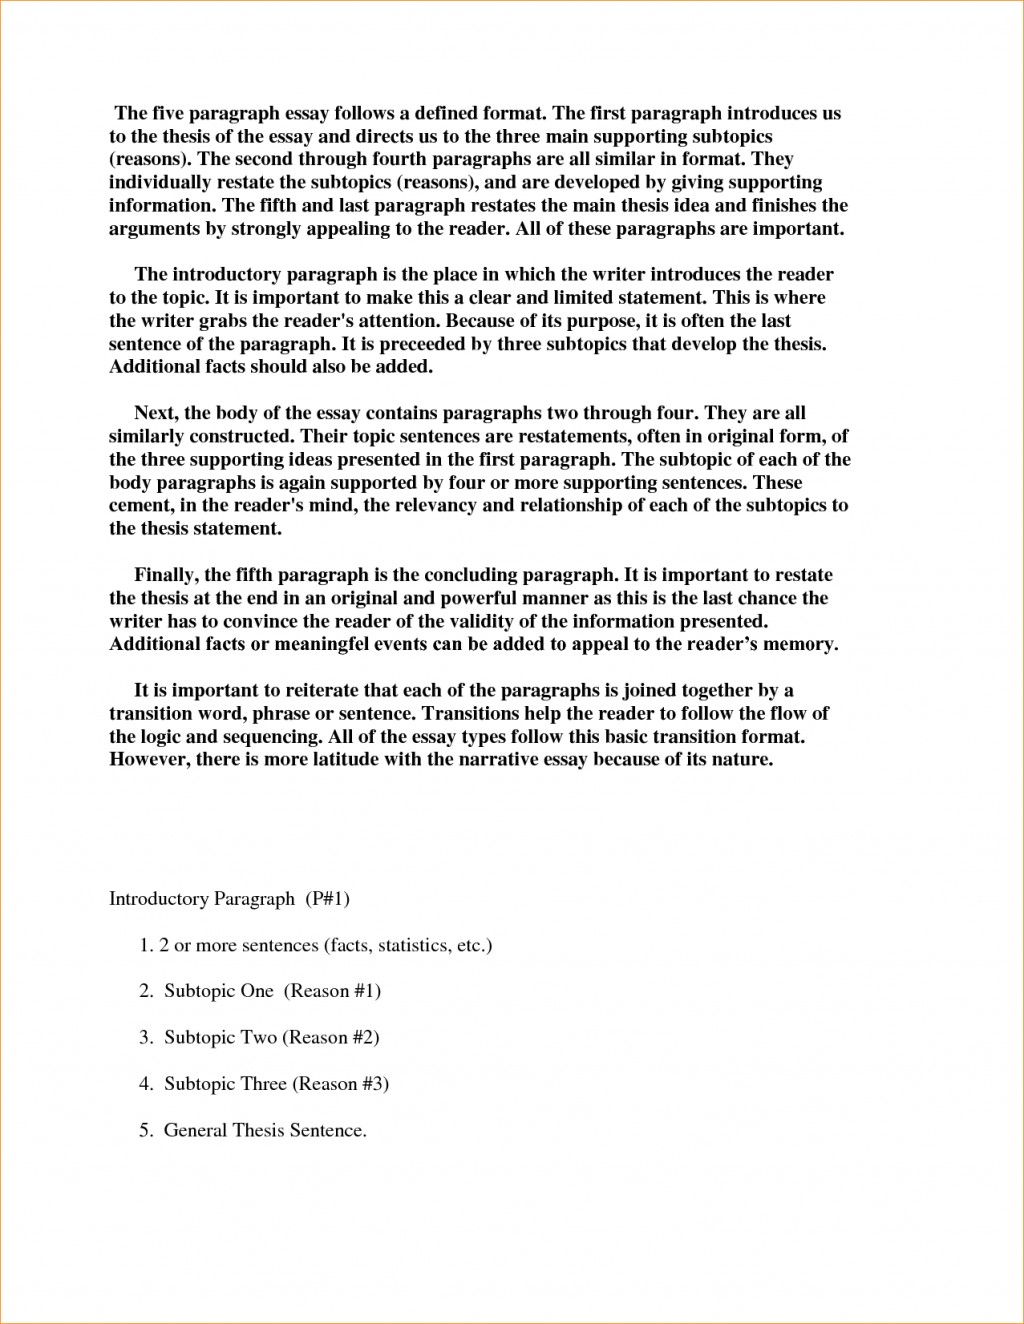 006 Essay Body Paragraphs Of An Concluding Paragraph Example Ap How To Start Off In Examples Format Expository Synthesis Informative Third Persuasive Argumentative Narrative Magnificent Conclusion Topic Sentence Template Large